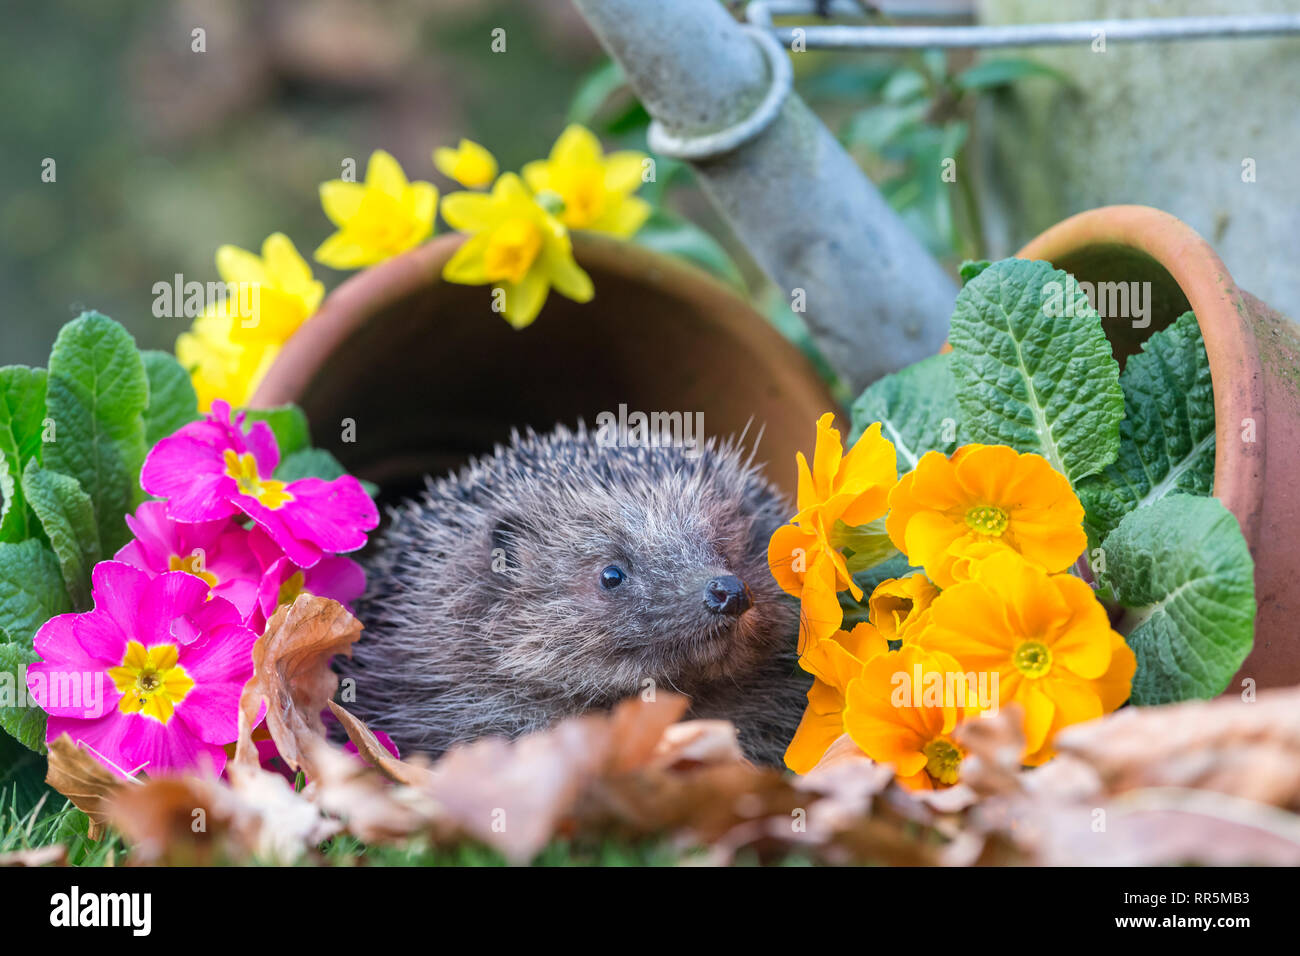 Hedgehog, Scientific name: Erinaceus Europaeus, in Springtime in natural garden habitat with colourful Spring flowers and flower pots. Landscape - Stock Image